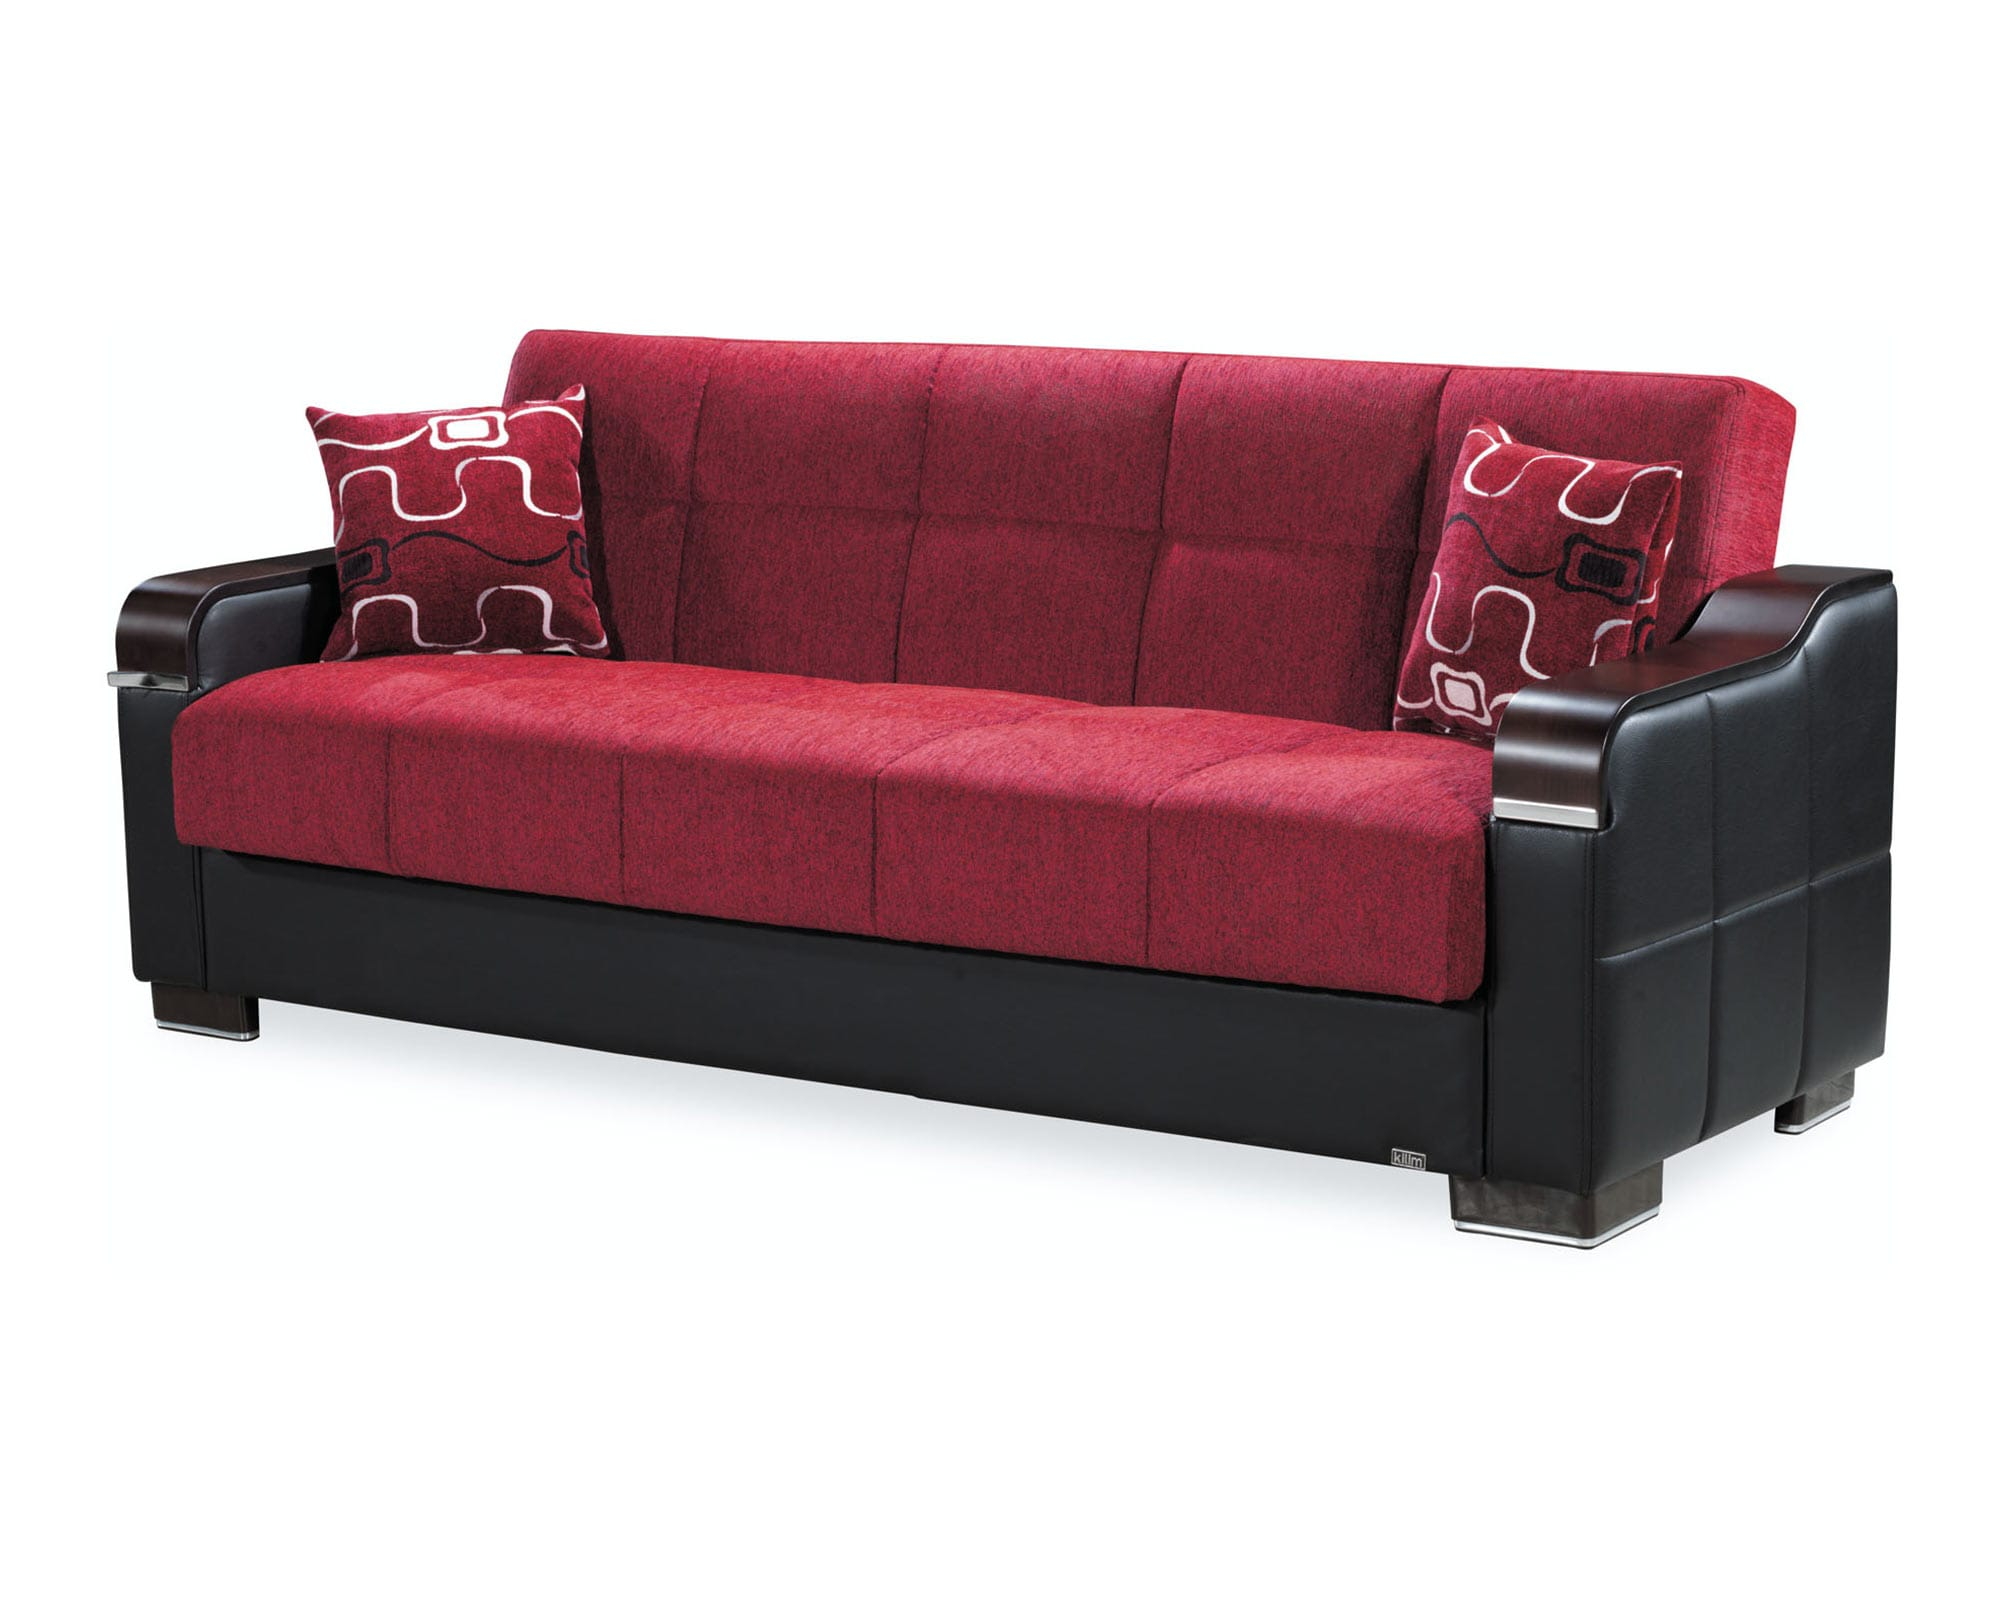 Uptown Red Convertible Sofa by Casamode